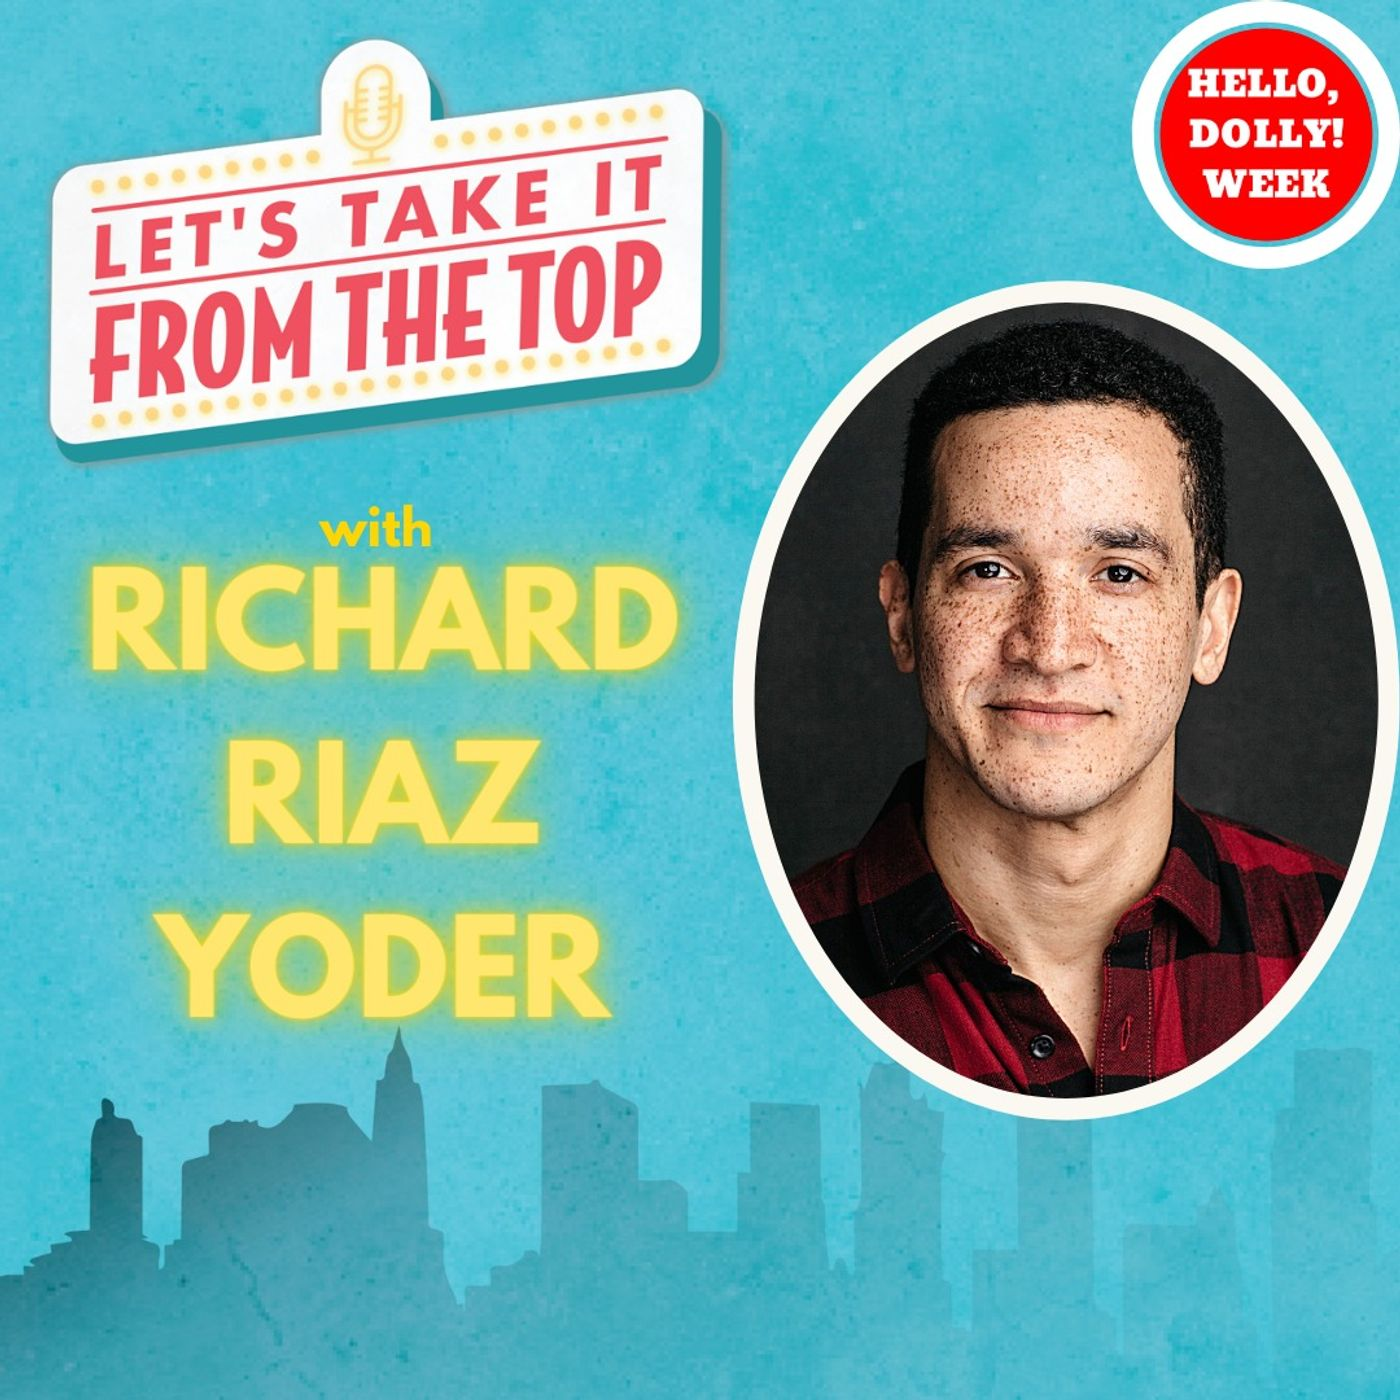 Episode 6: Richard Riaz Yoder